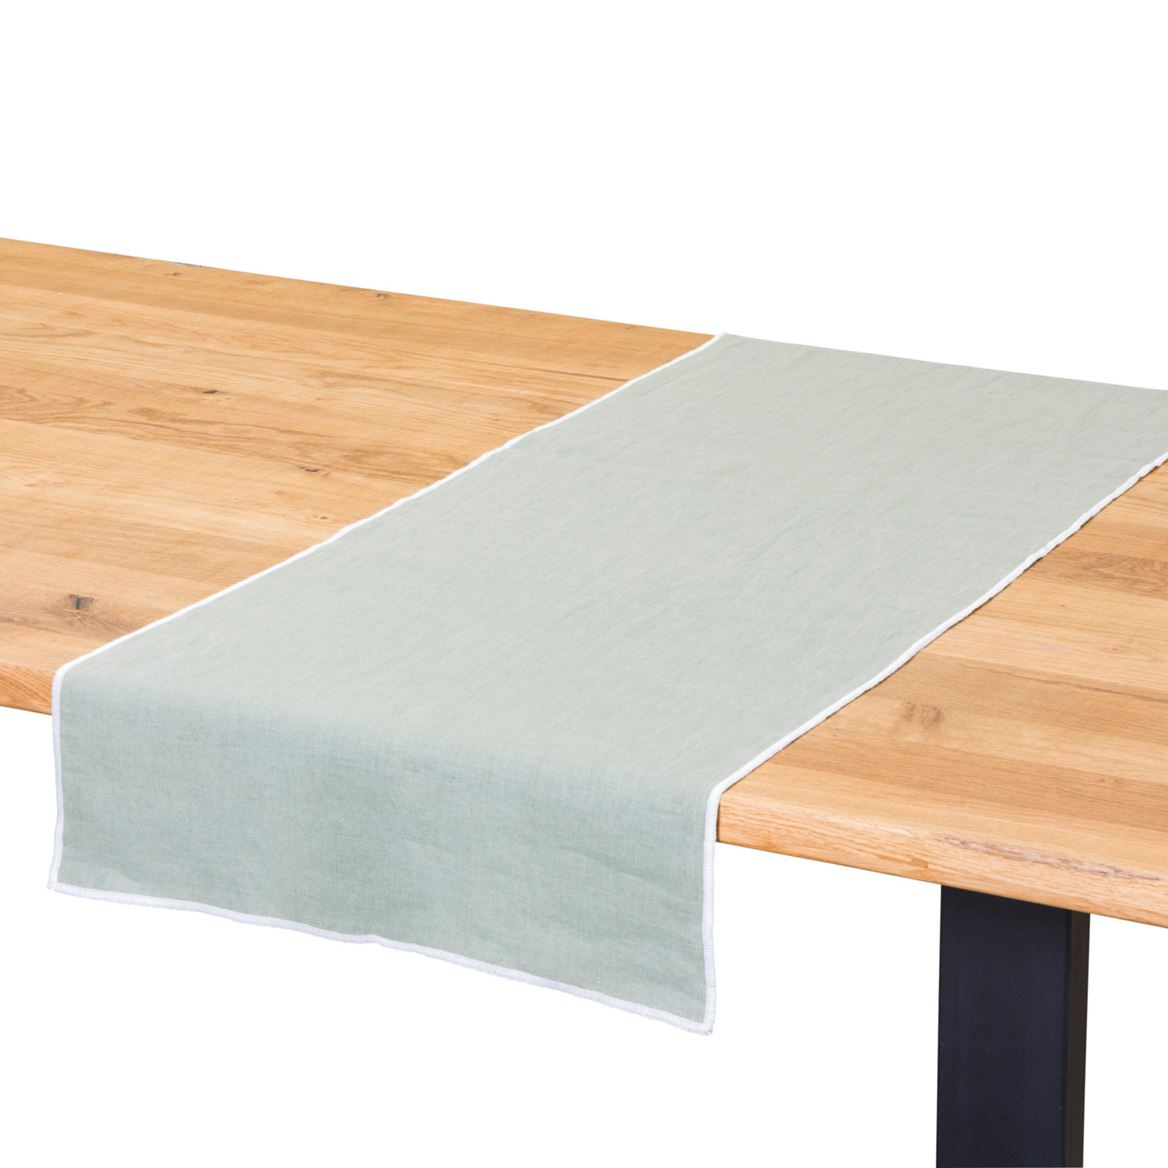 LINITY Chemin de table menthe Larg. 45 x Long. 150 cm_linity-chemin-de-table-menthe-larg--45-x-long--150-cm